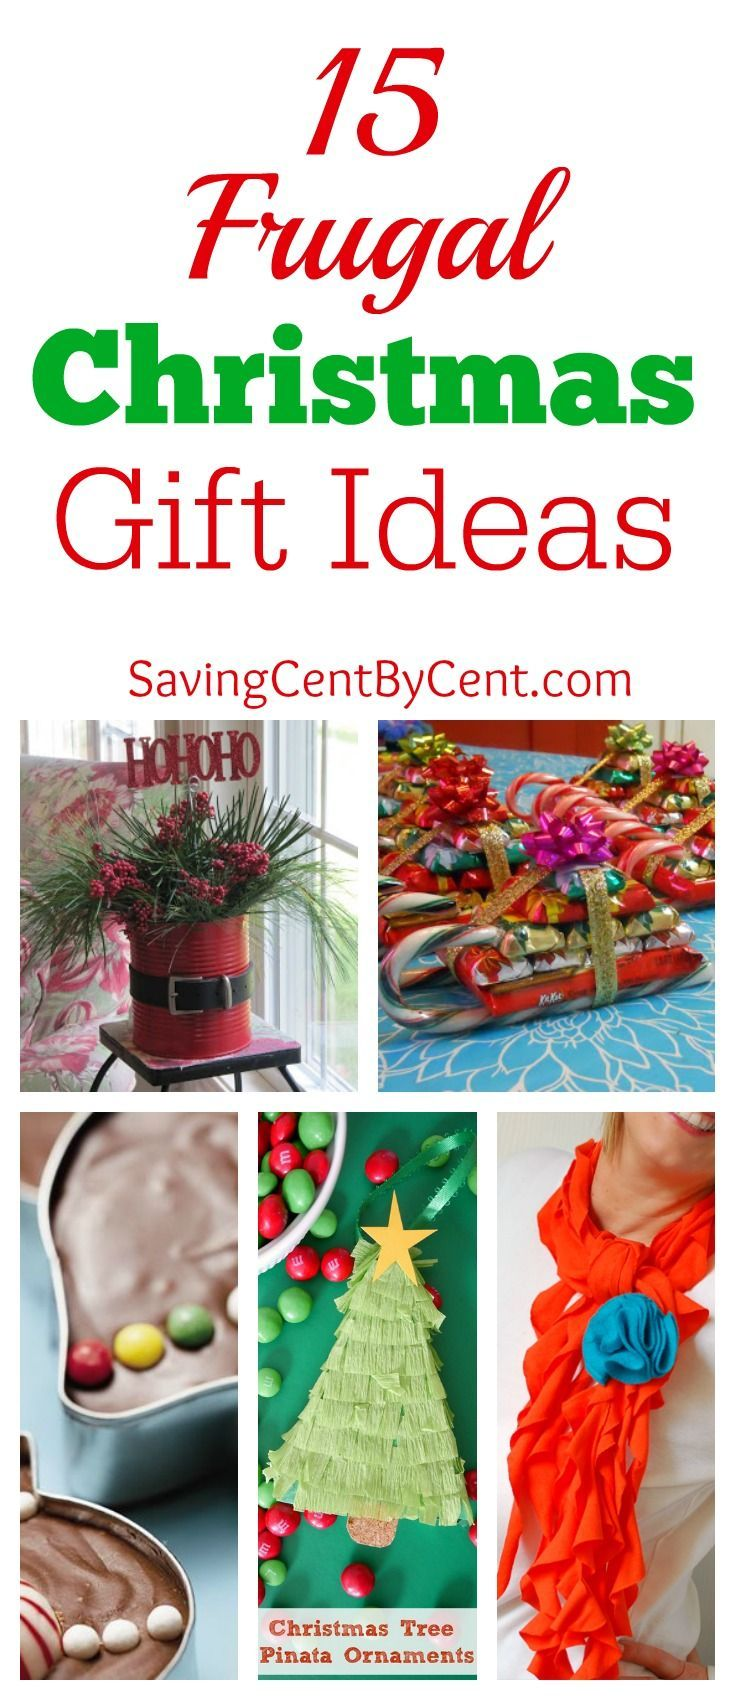 15 Frugal Christmas Gift Ideas   Frugal christmas, Frugal and ...